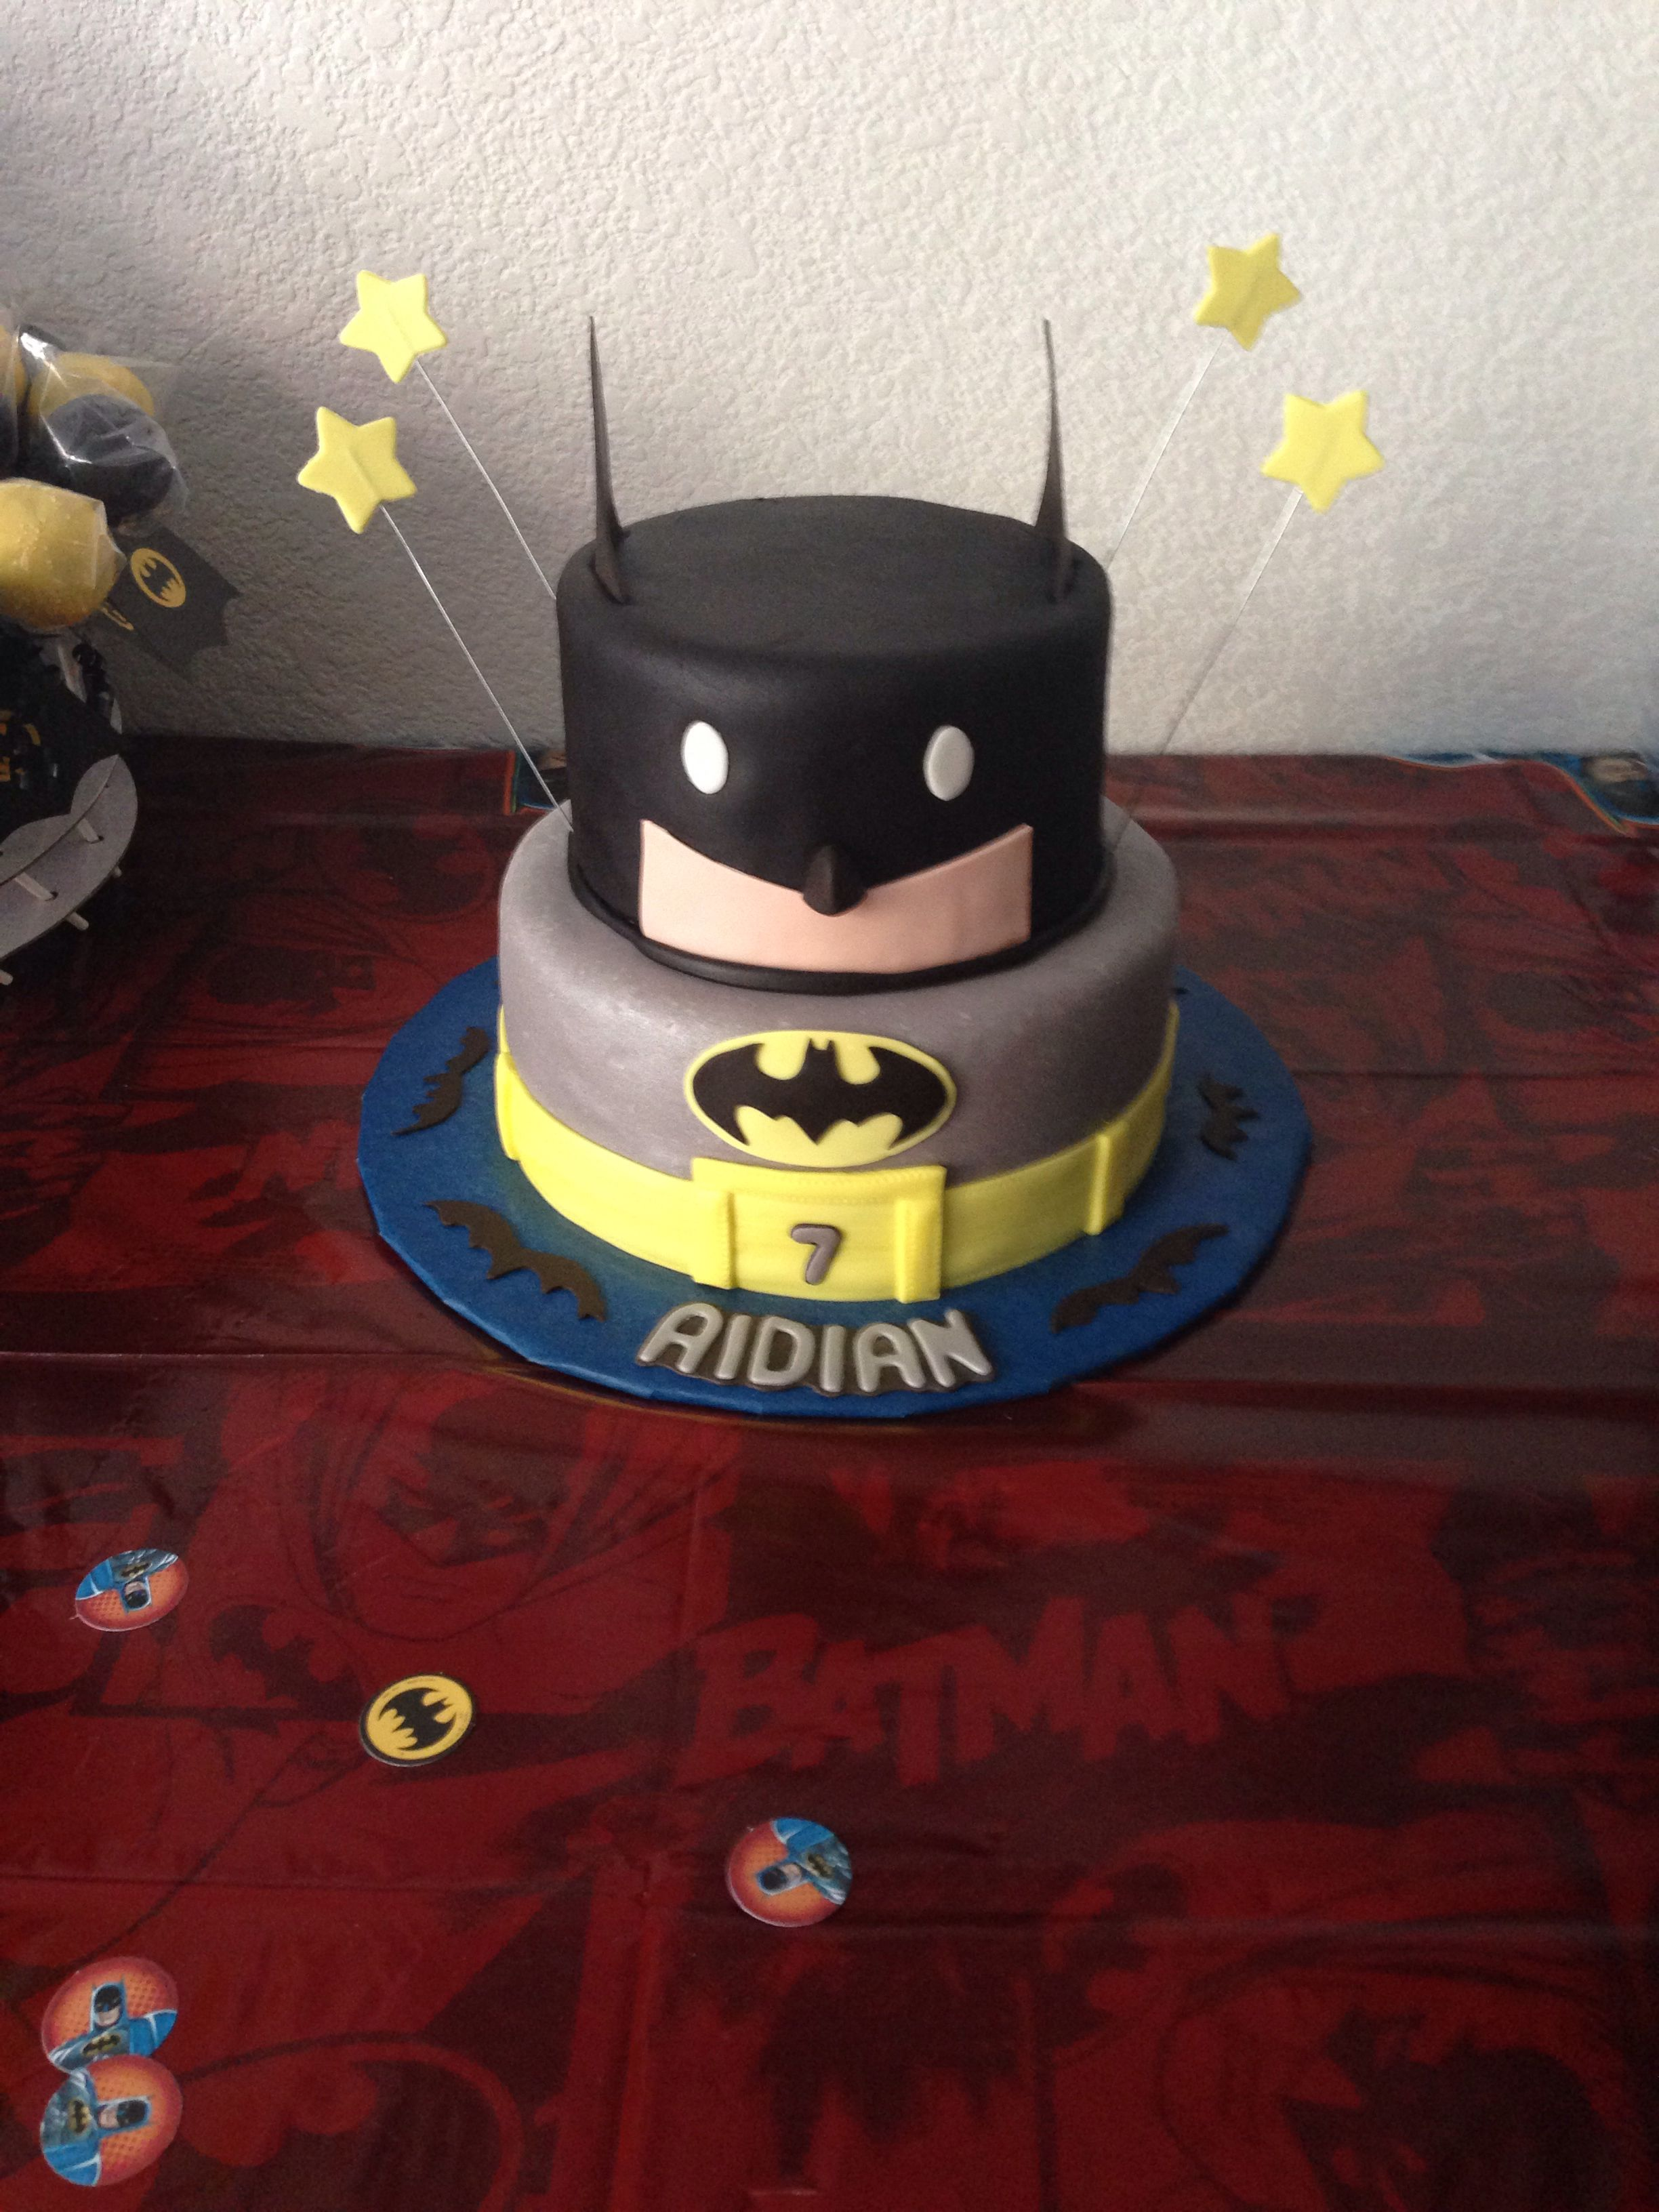 Lego batman cake | Party Ideas | Pinterest | Lego batman cakes ...